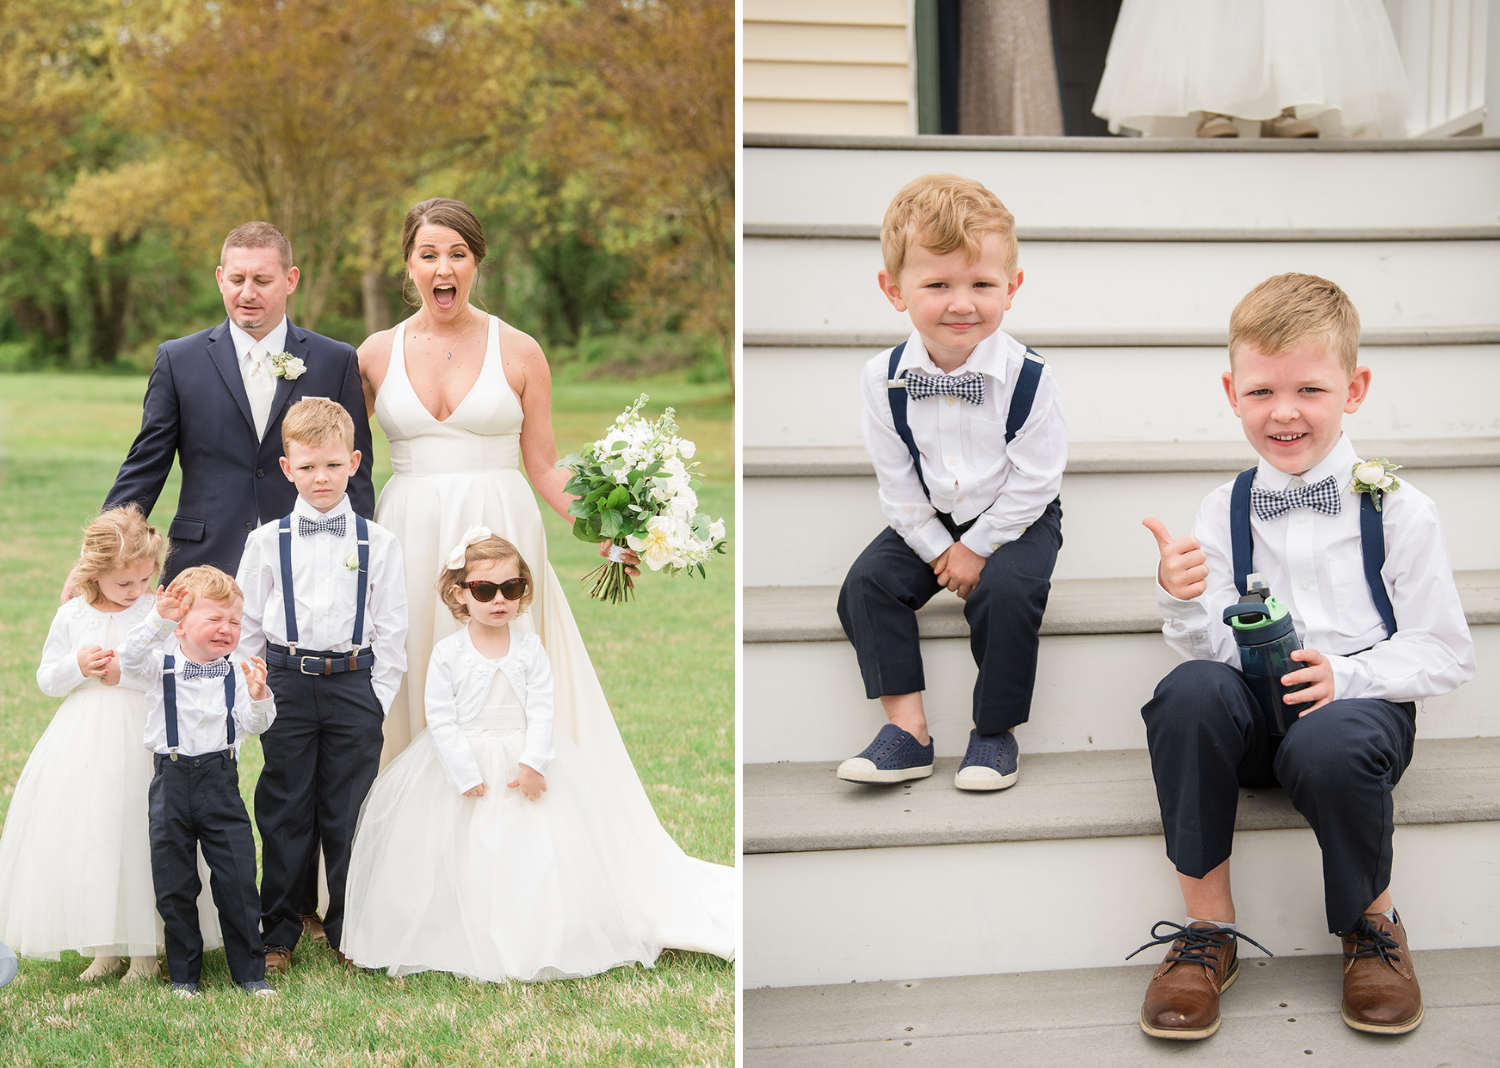 bride and groom smile with their flower girls and baby groomsmen